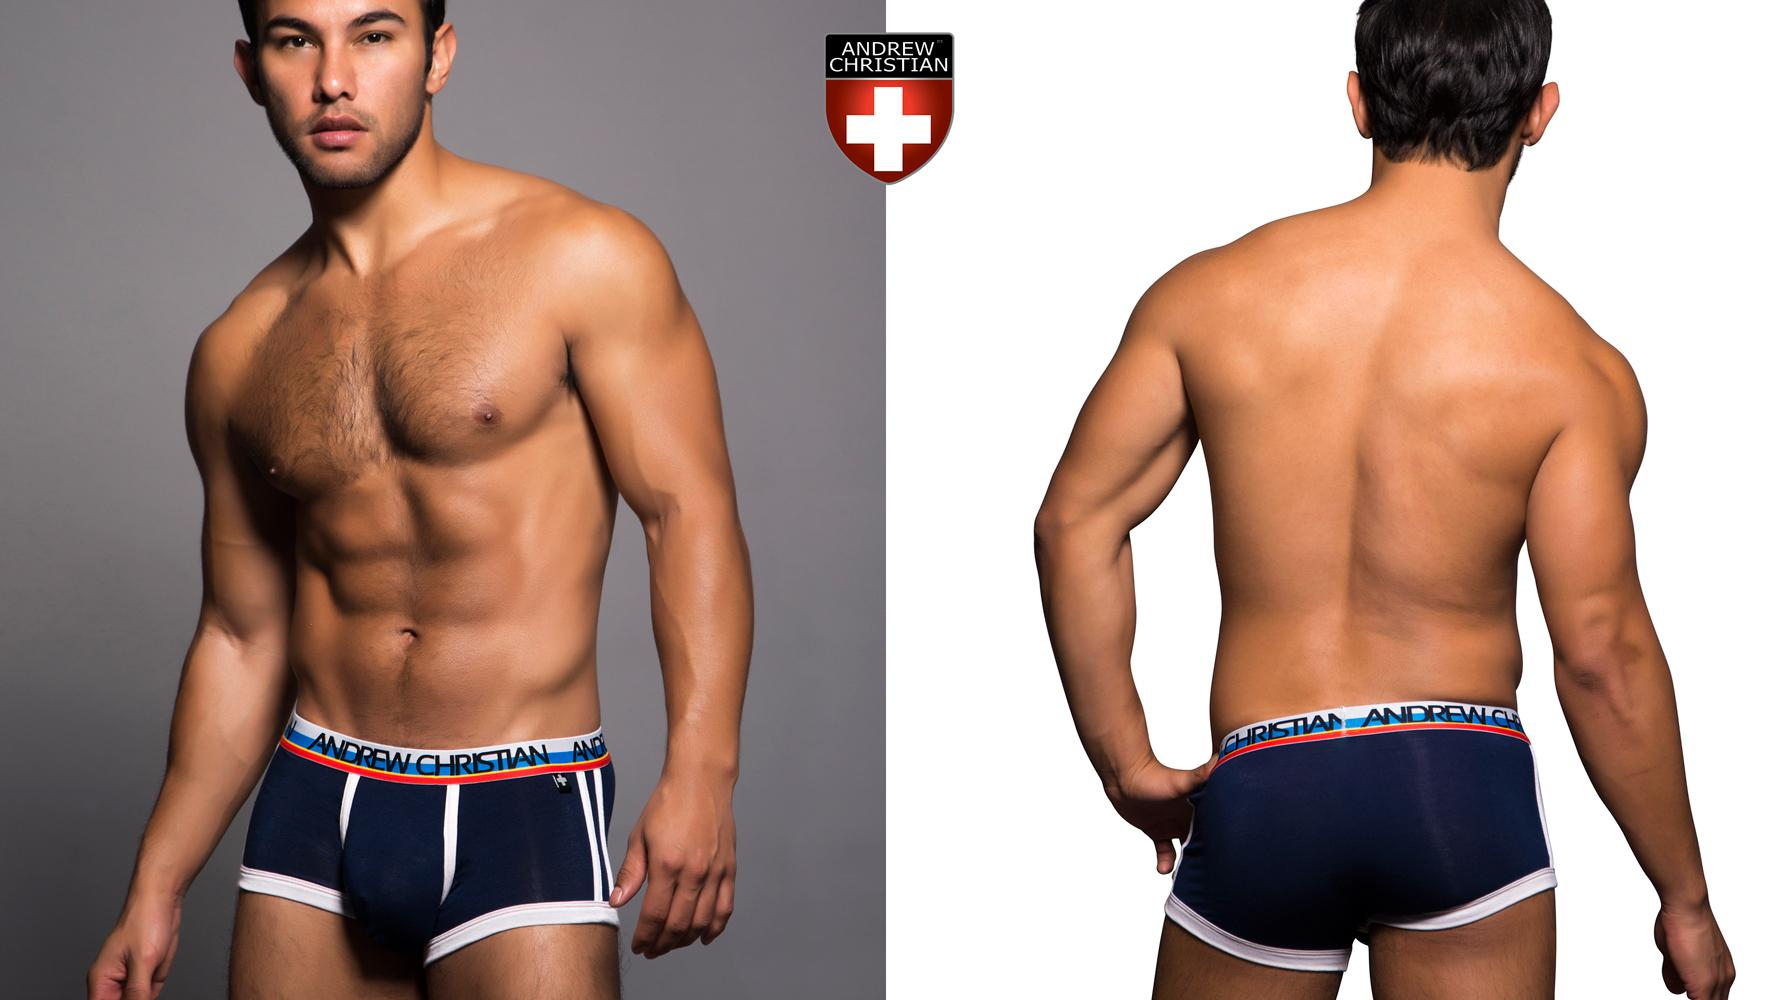 Andrew Christian Almost Naked Sports Boxer